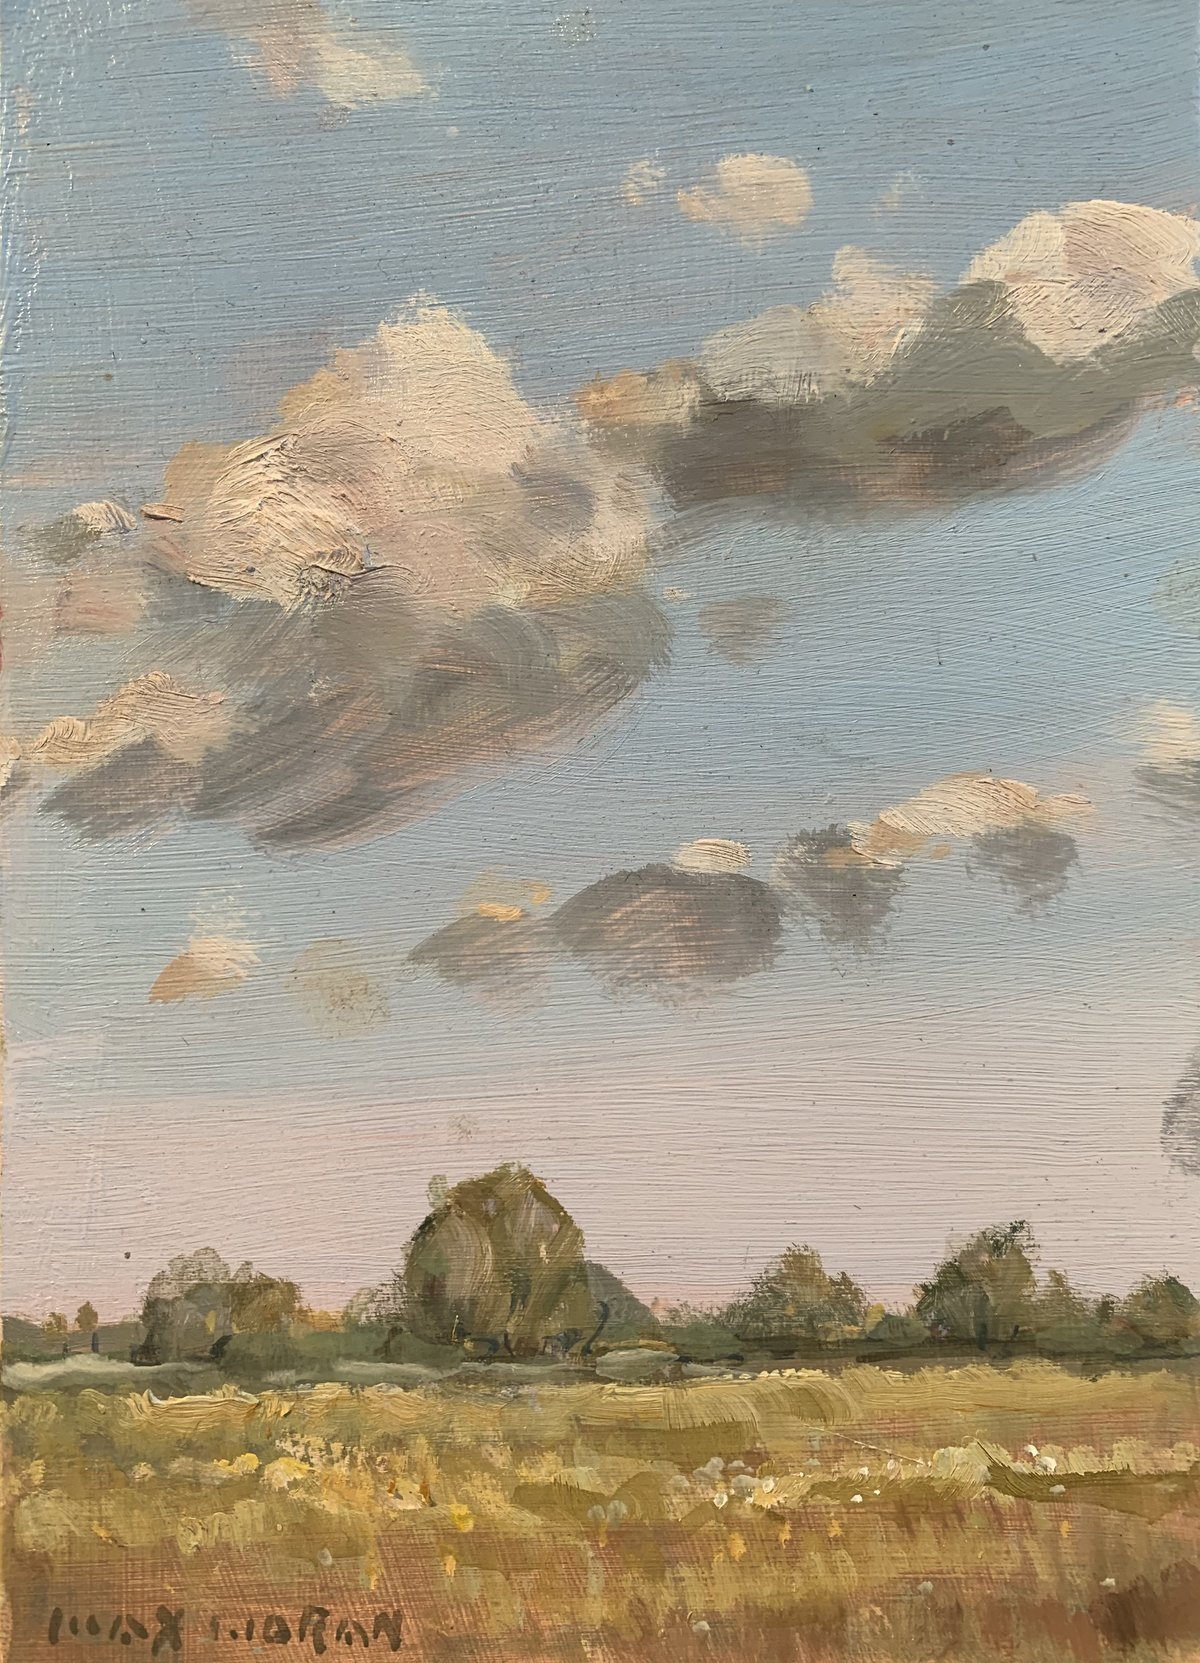 Passing Clouds 5x7 oop 1,000